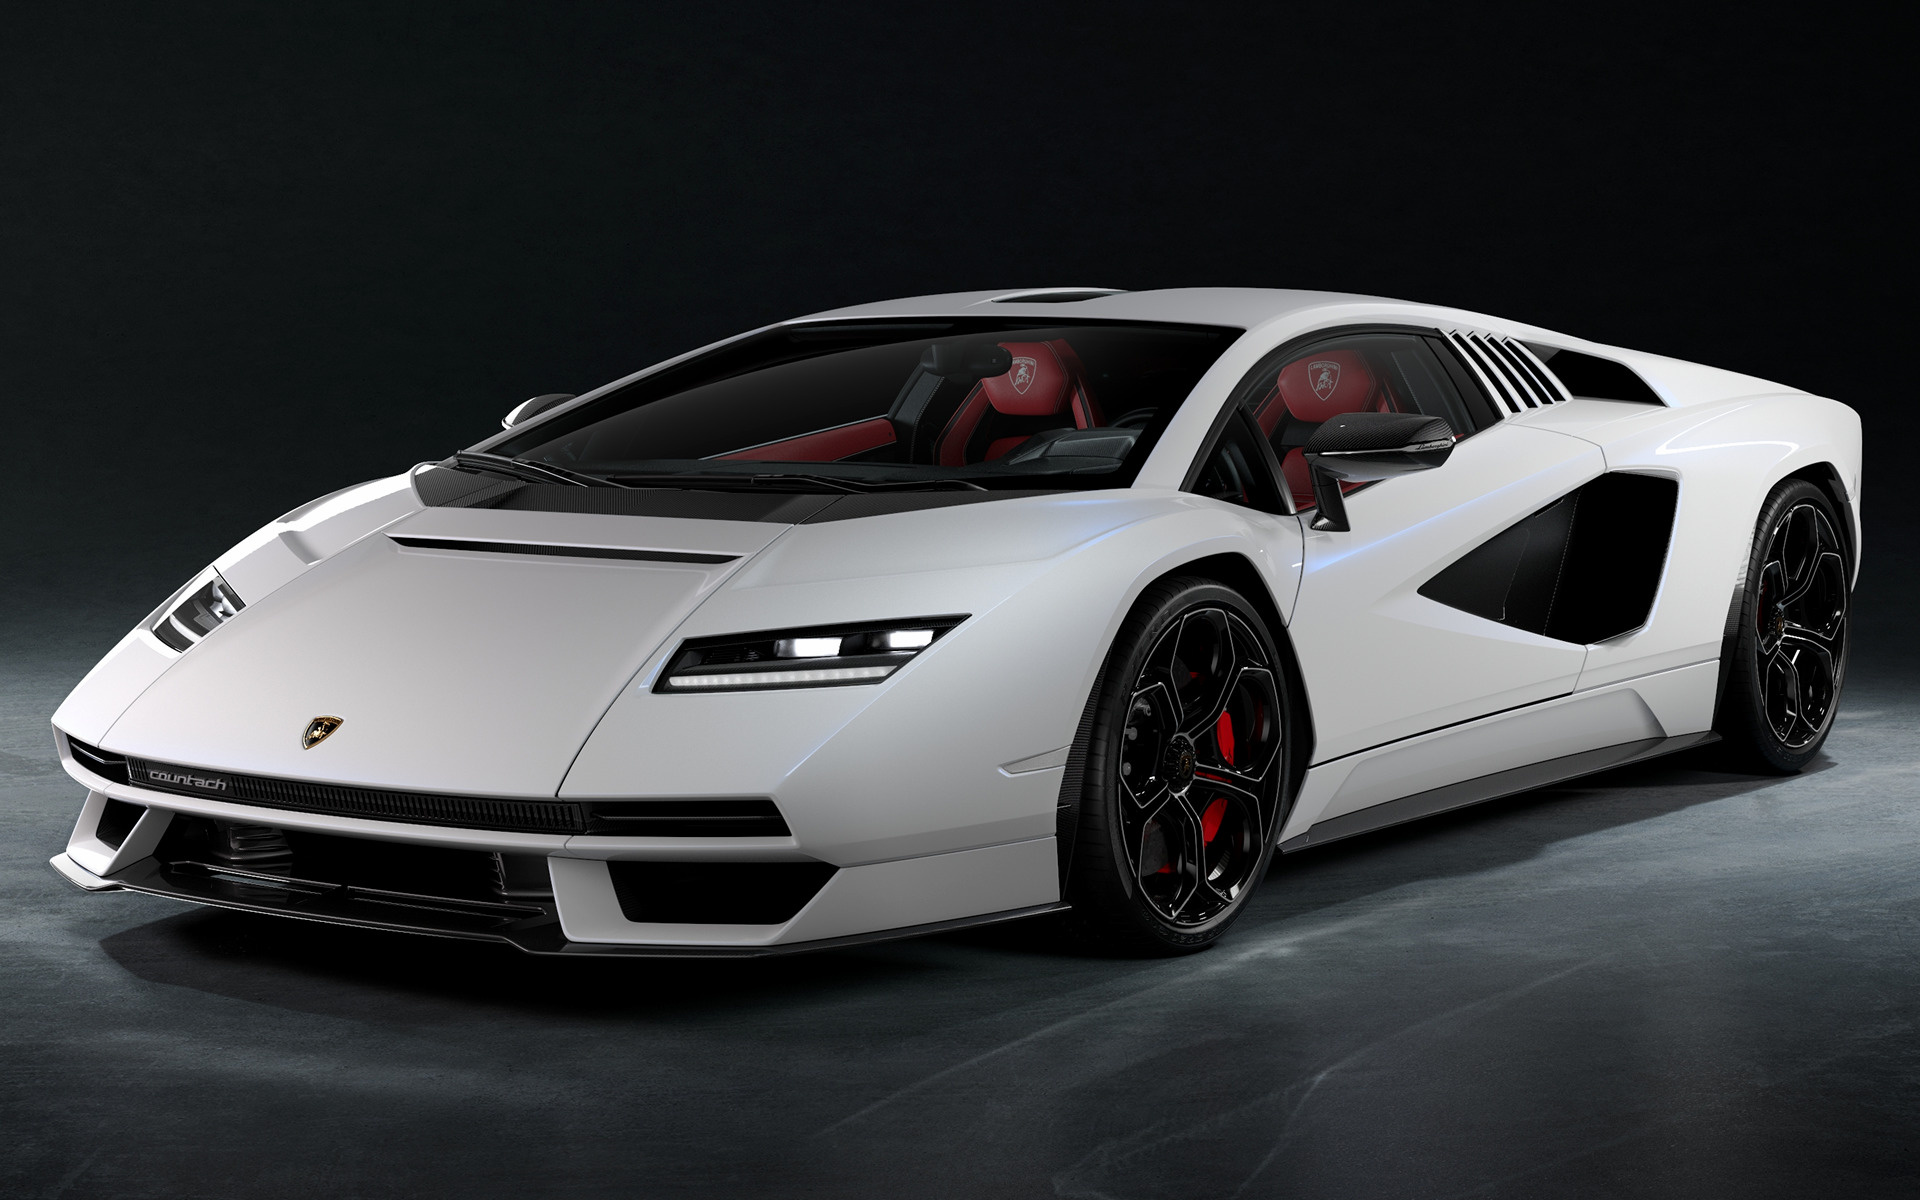 Others say that anything from a marque like ferrari or lamborghini is an inst. 4amn8vkfv26kum